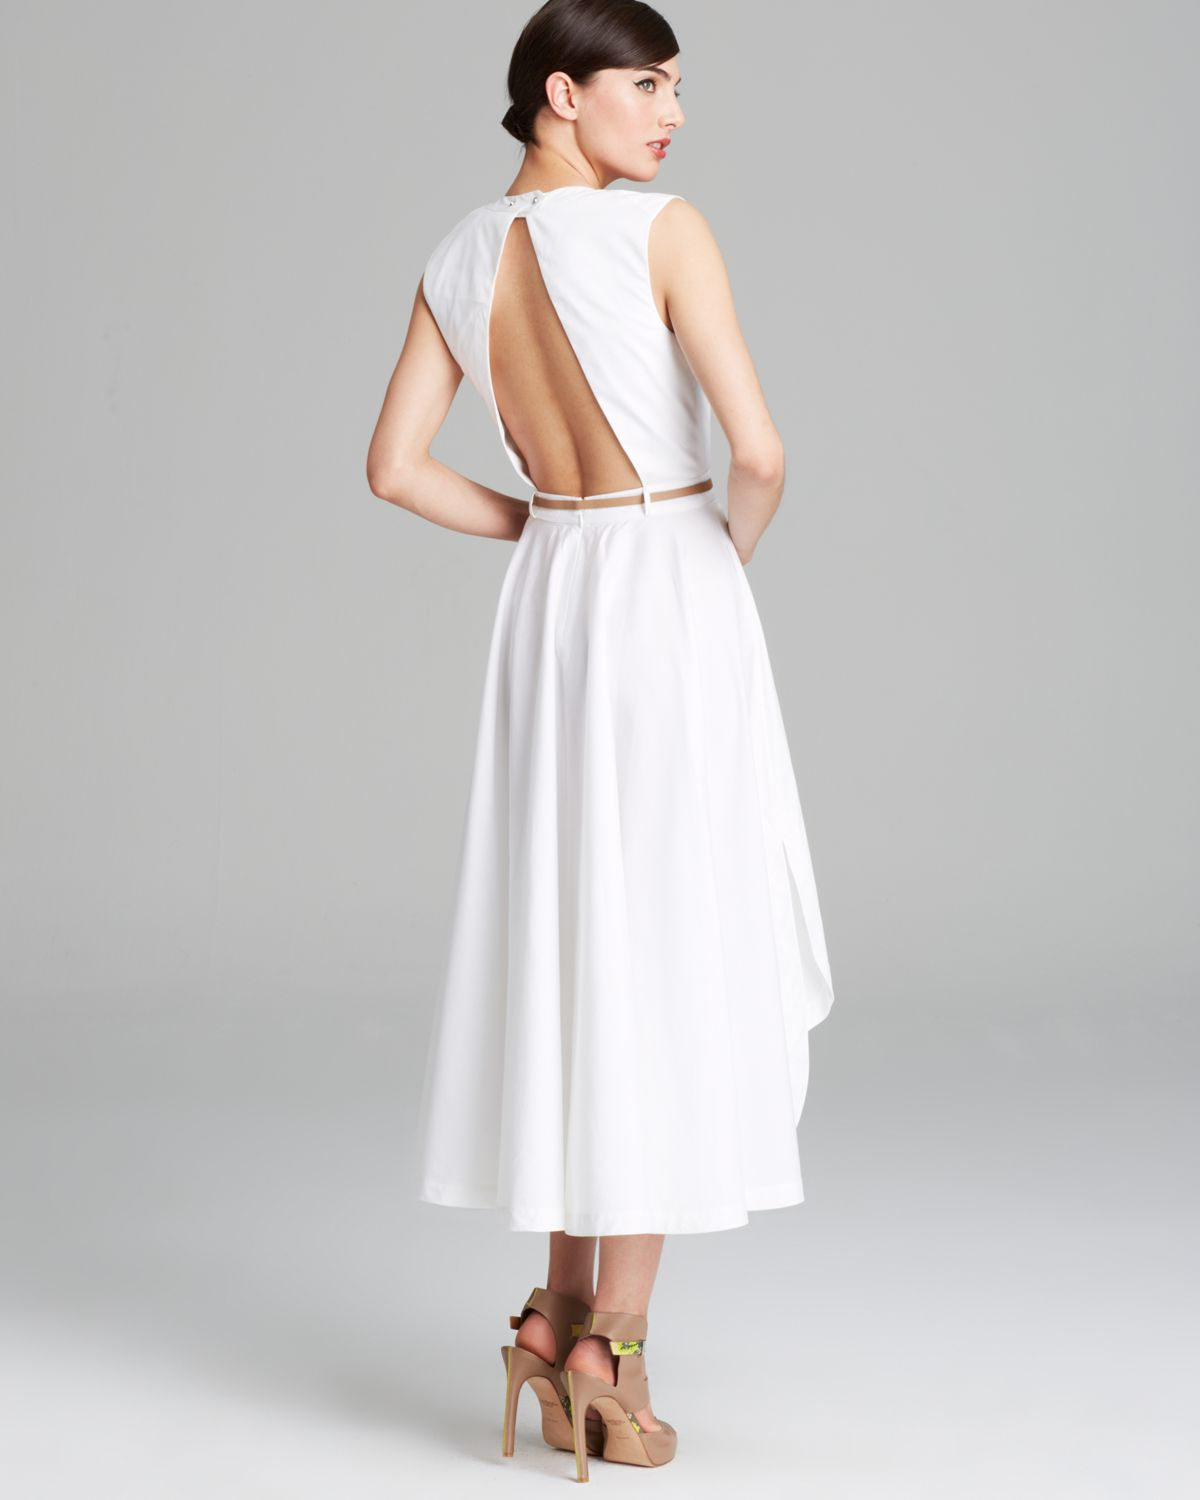 Off White Tea Length Dress